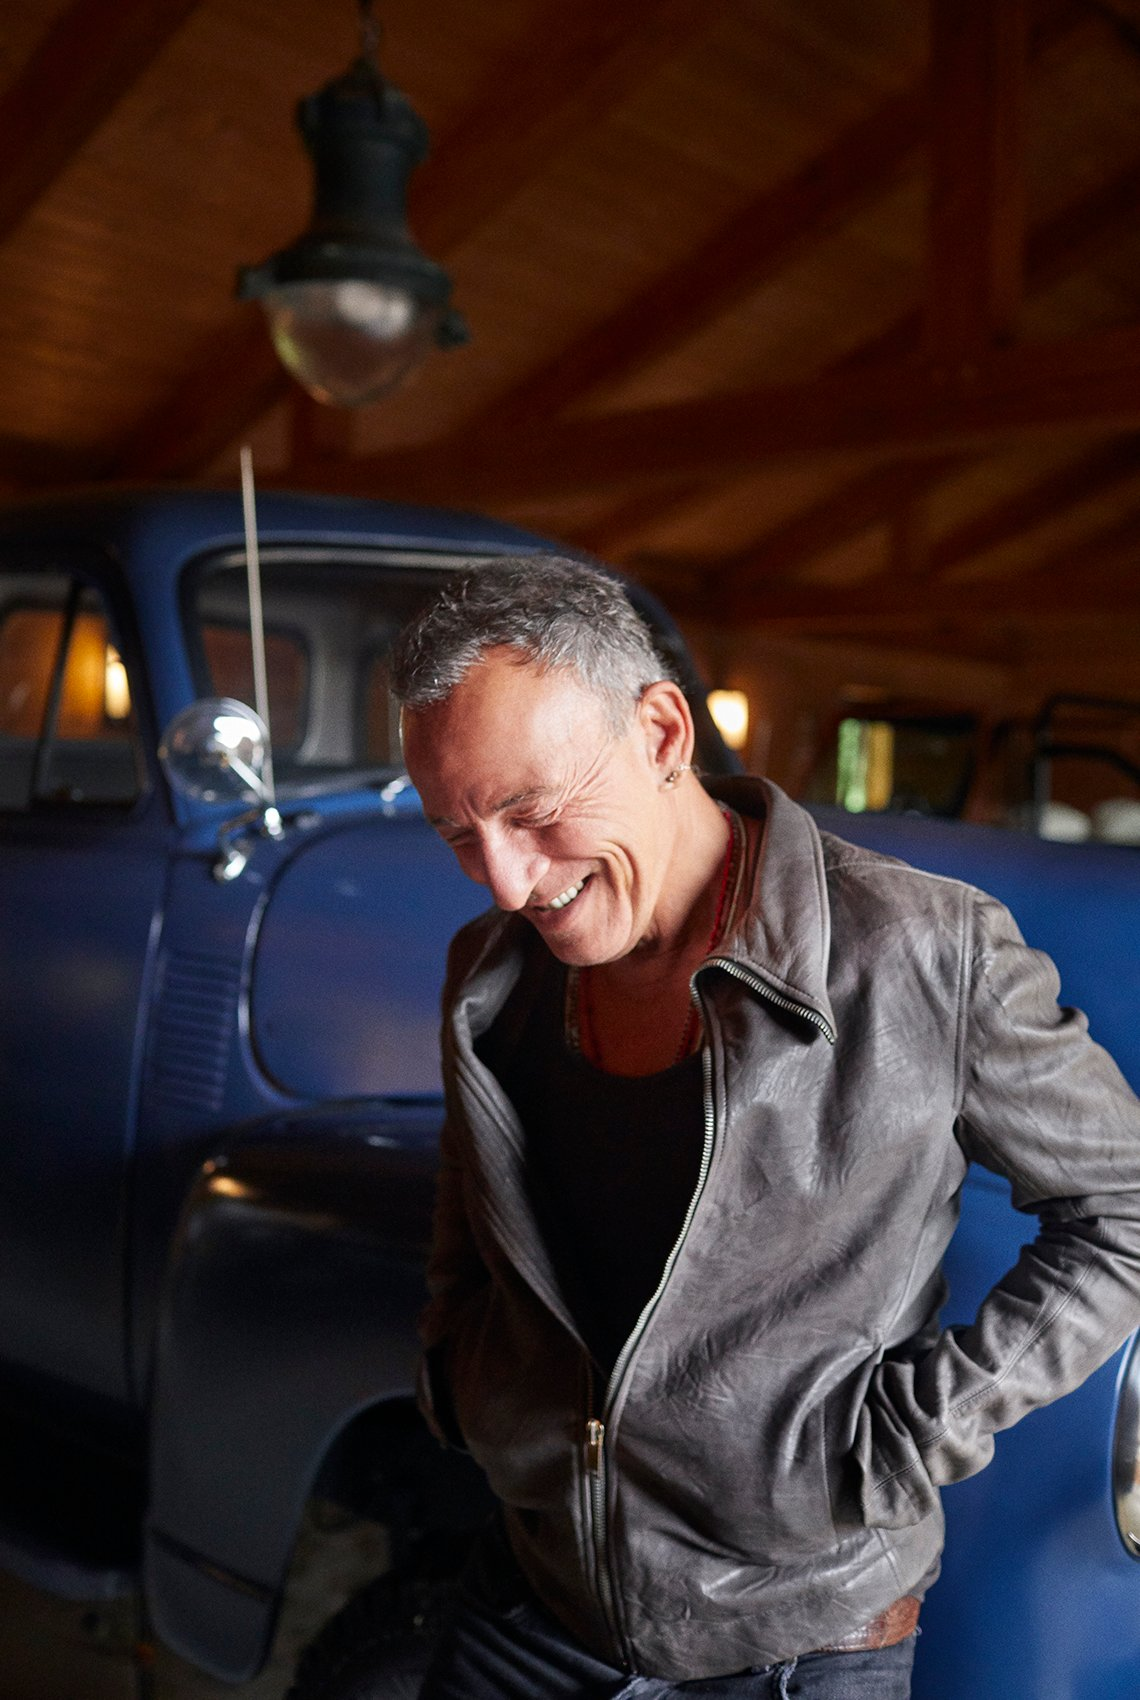 bruce springsteen portrait taken in his garage at home